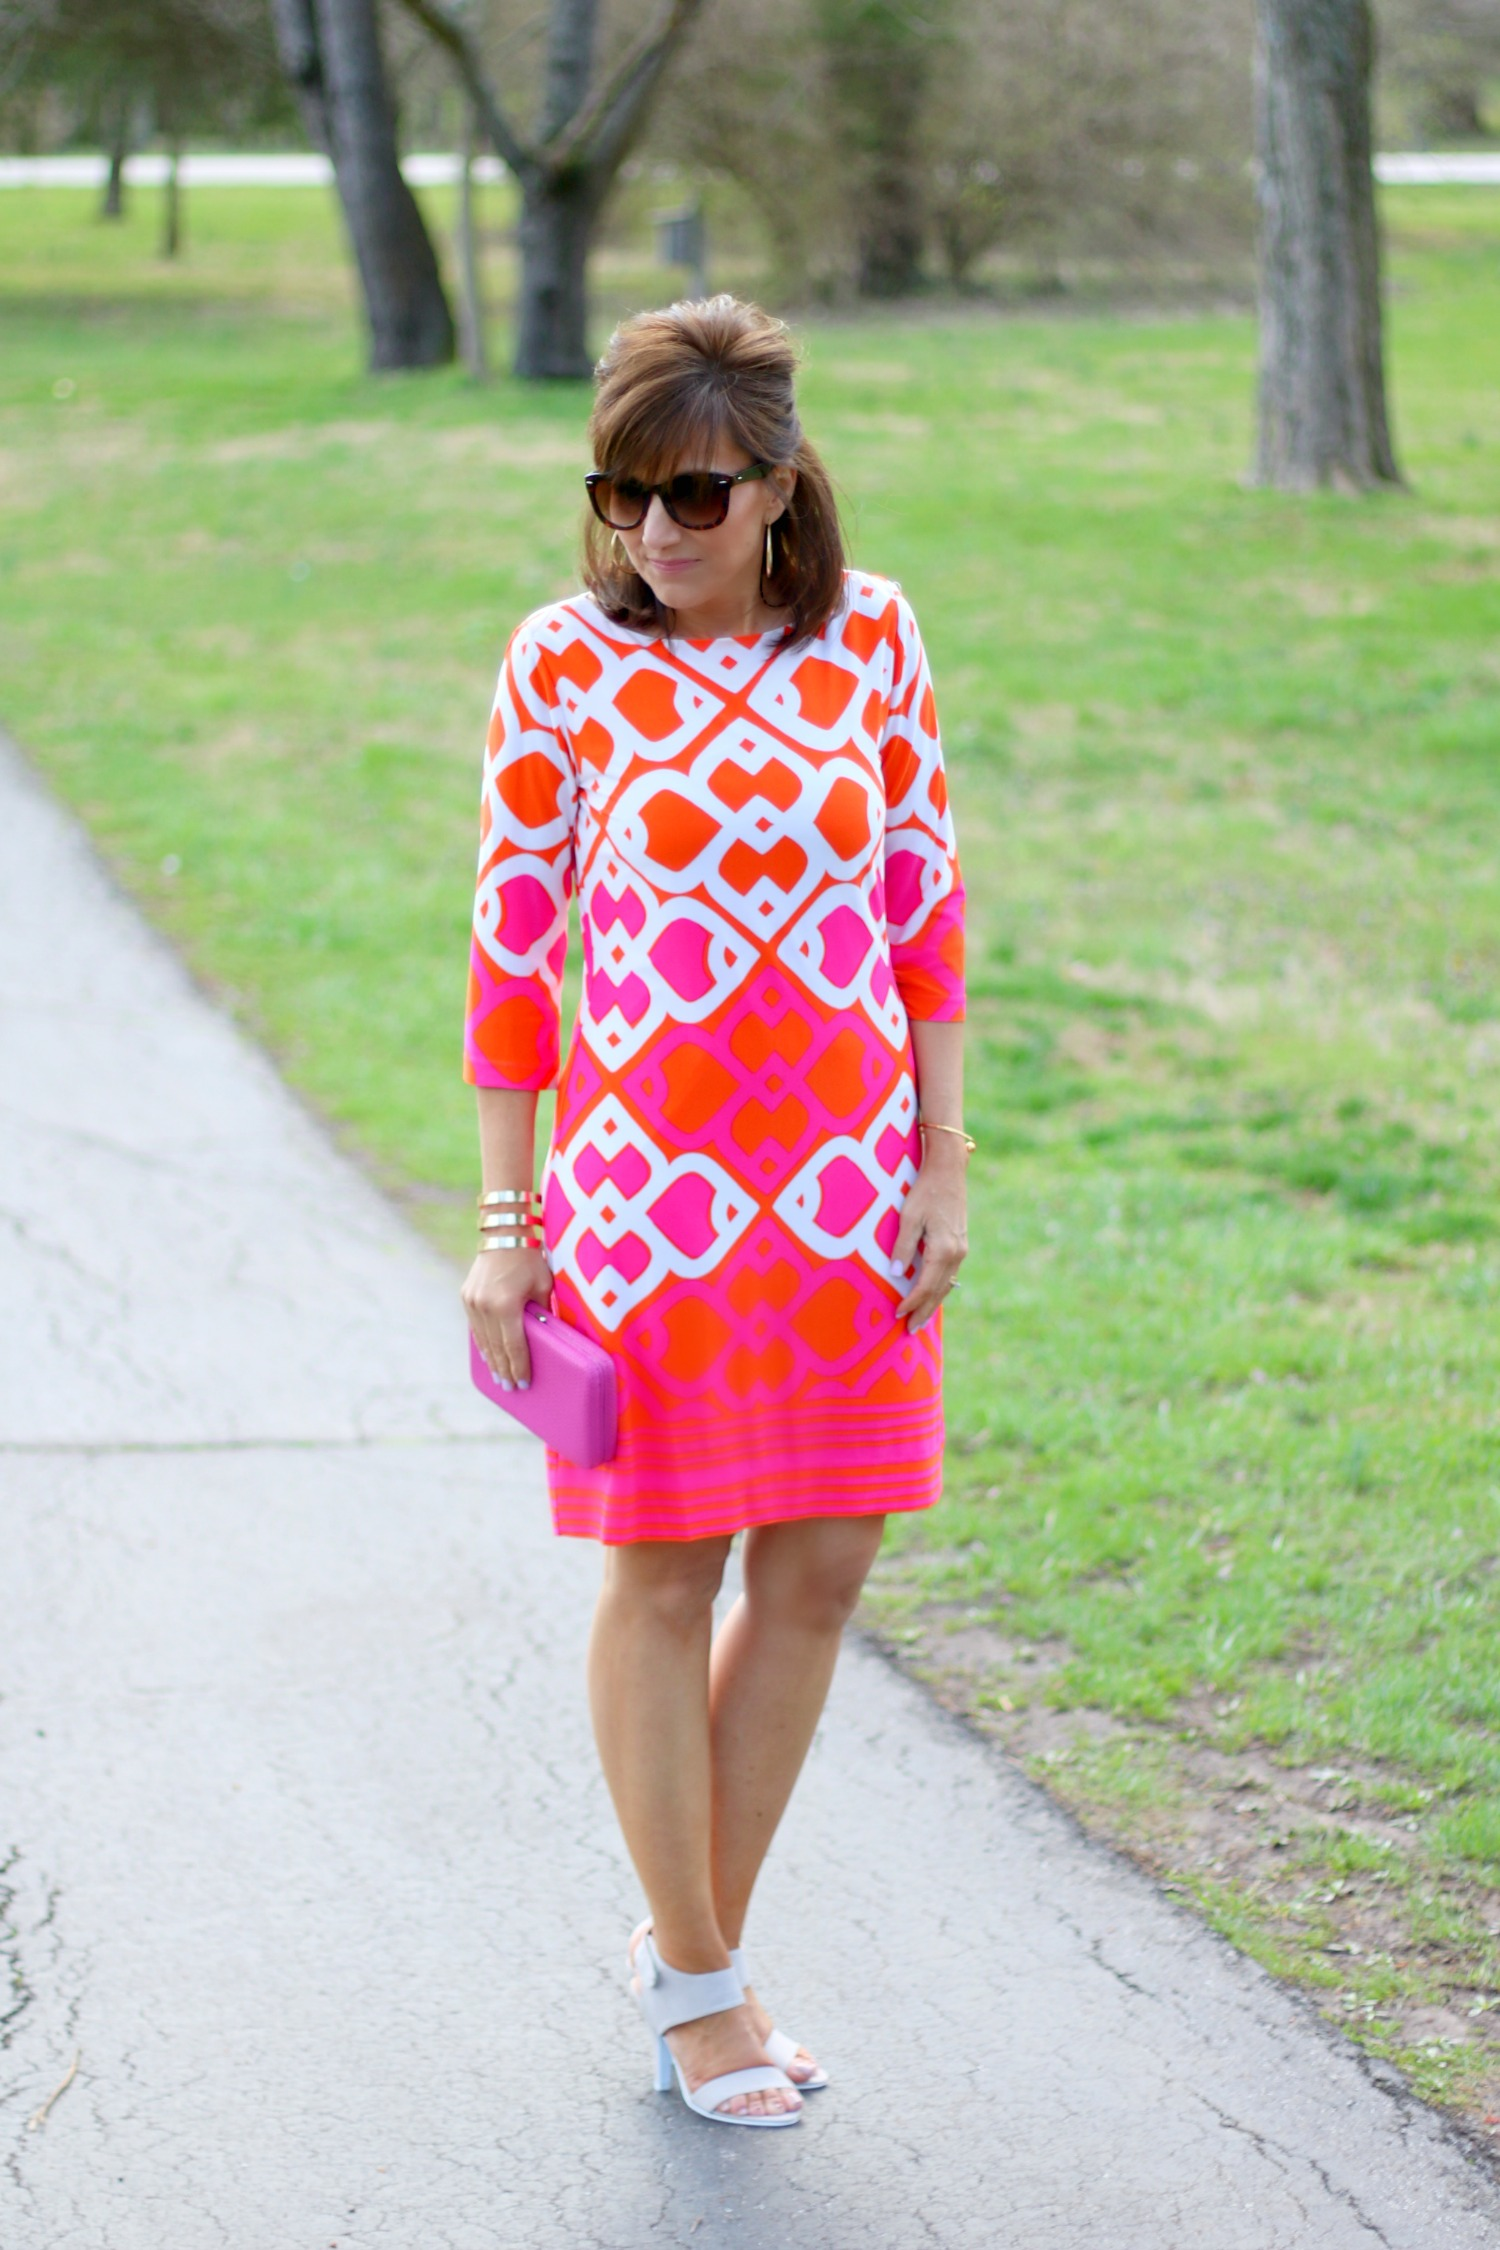 27 Days of Spring Fashion: Easter Dress